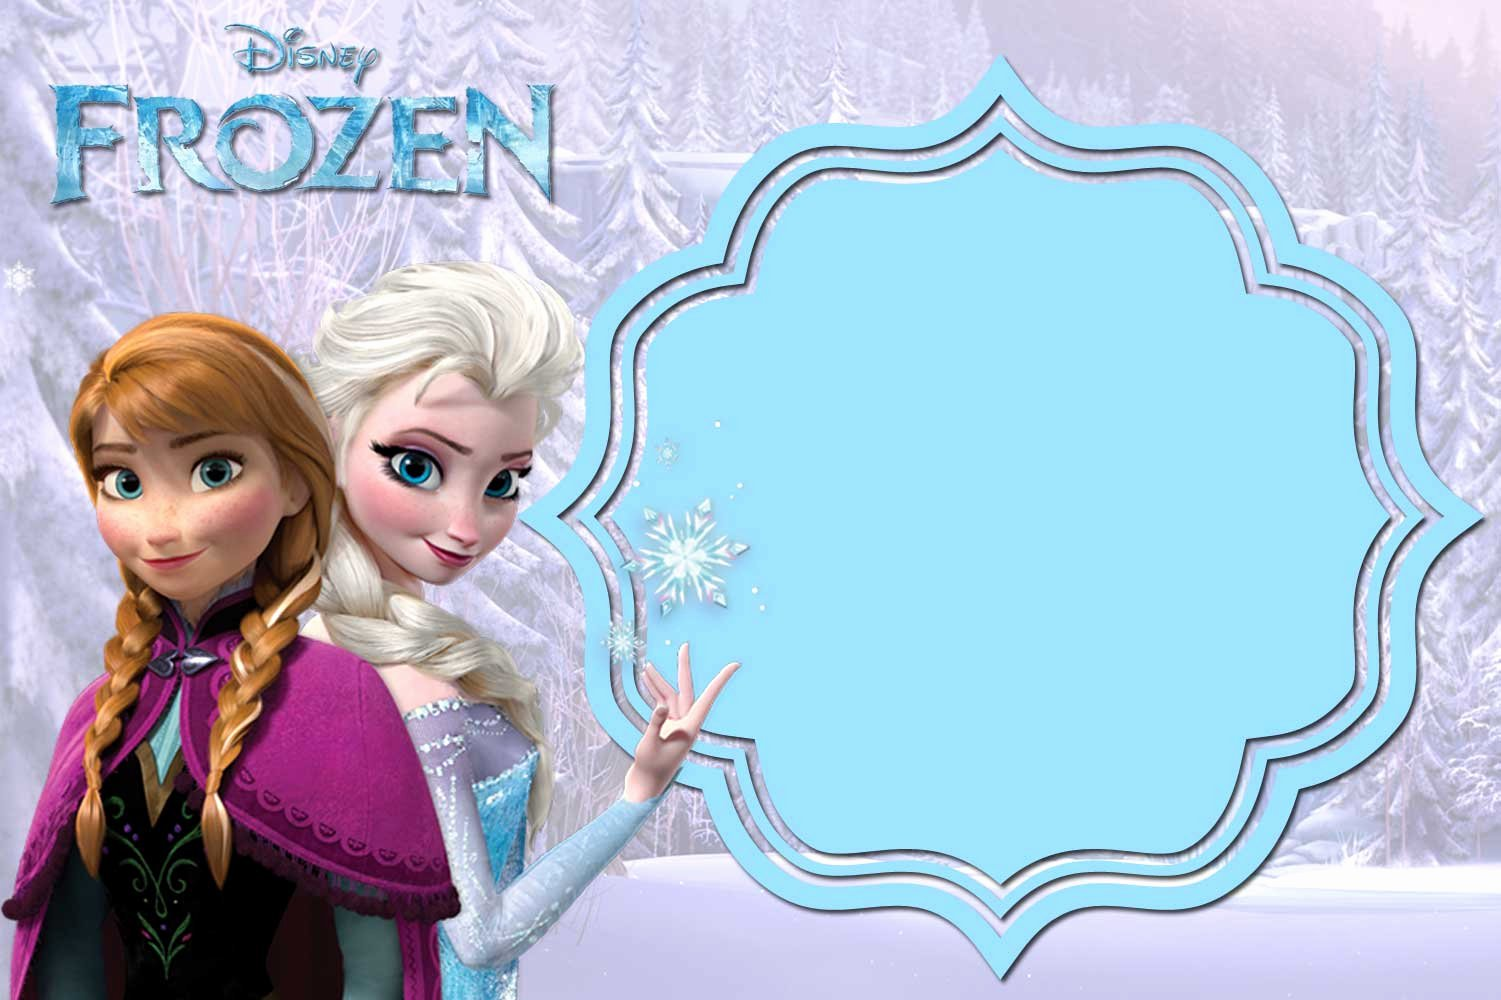 Free Frozen Invitations Template Luxury Free Printable Frozen Anna and Elsa Invitation Templates